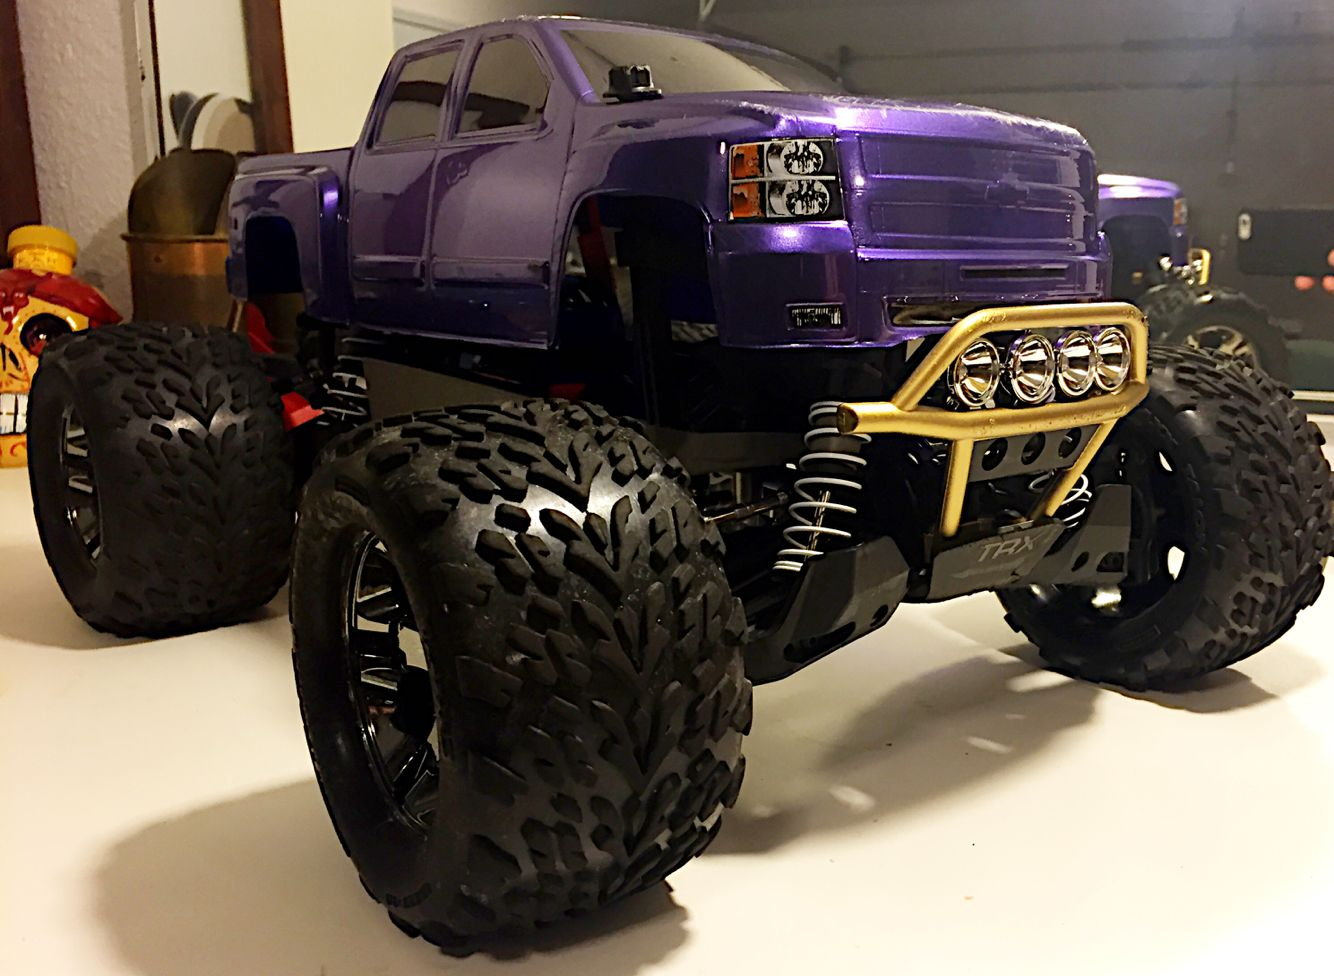 Traxxas Stampede 4x4 VXL Brushless with 2cell Lipo and many